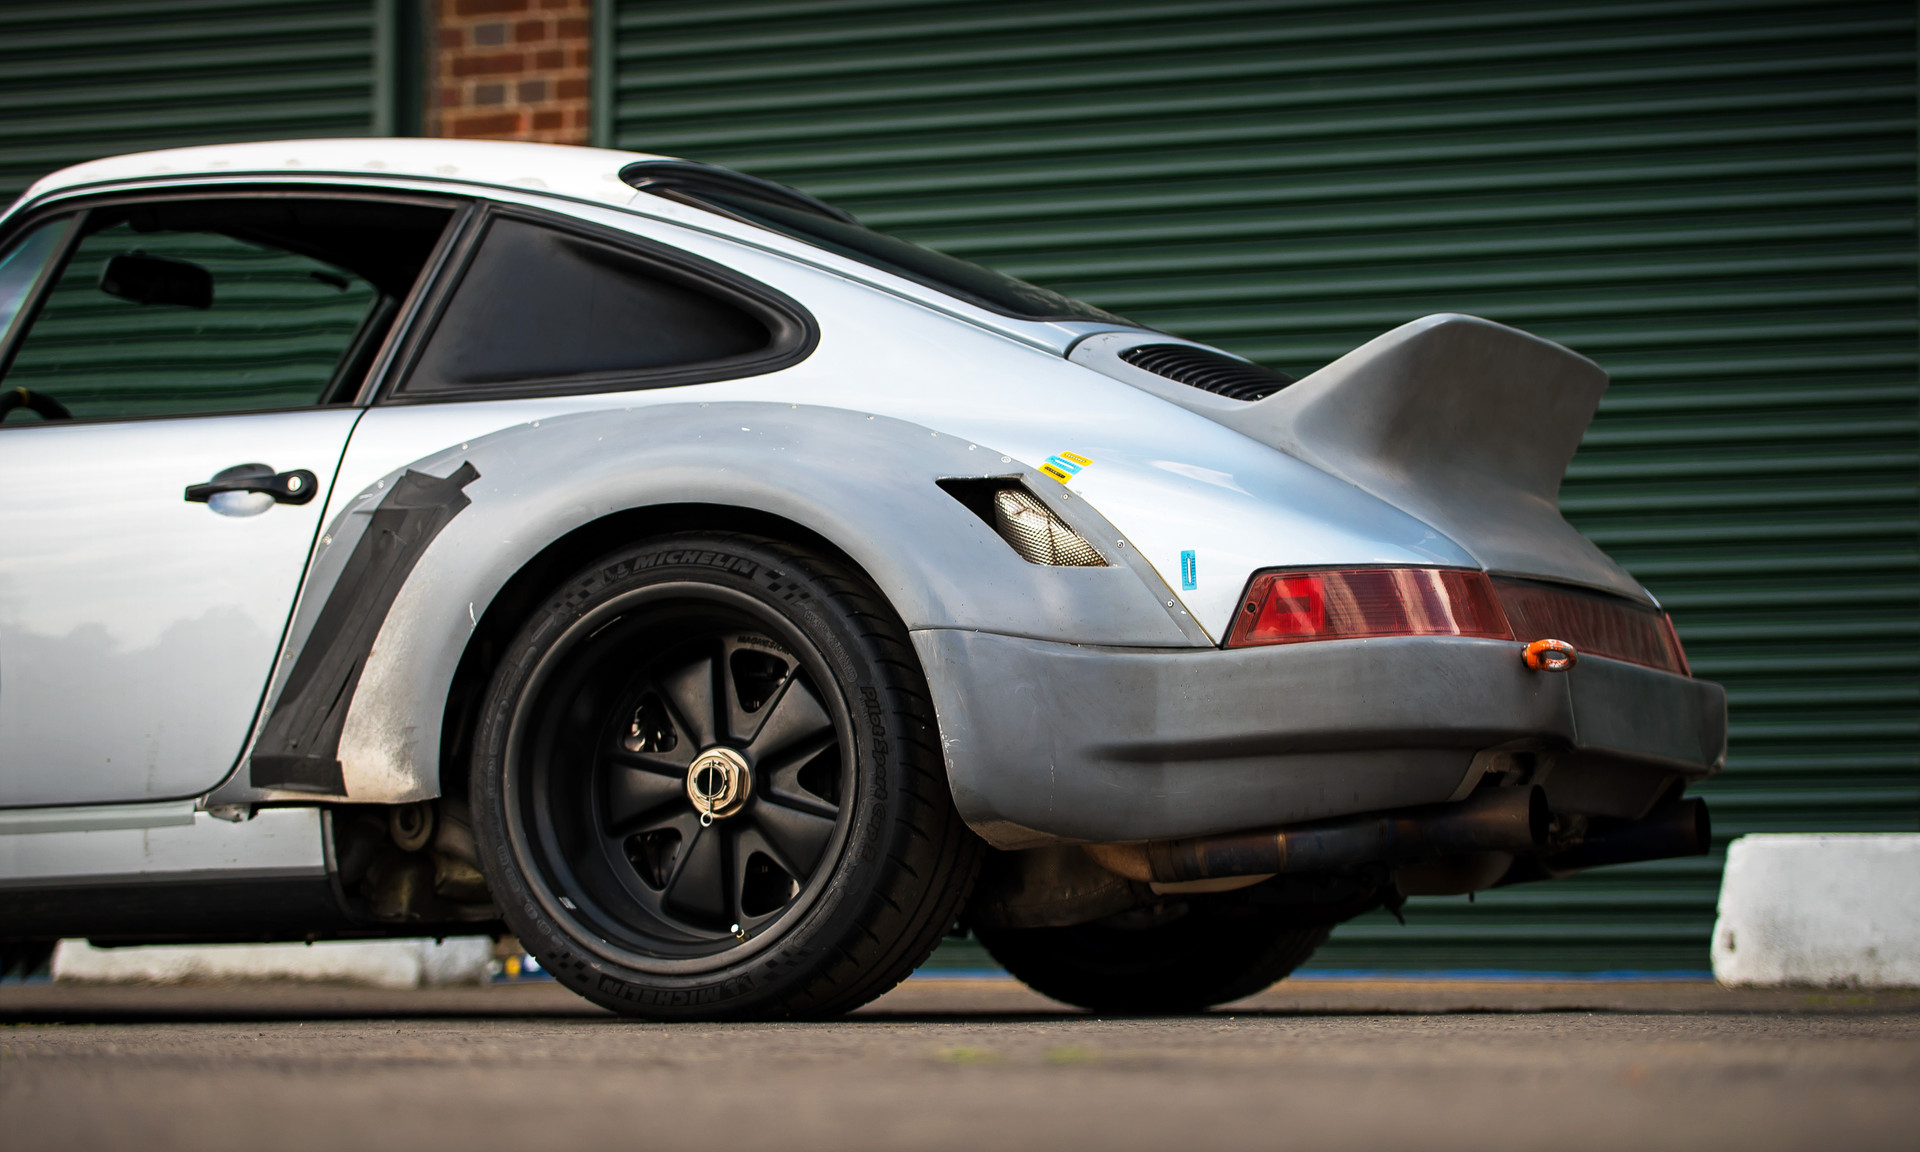 Singer Porsche 911 Williams DLS Test Mule